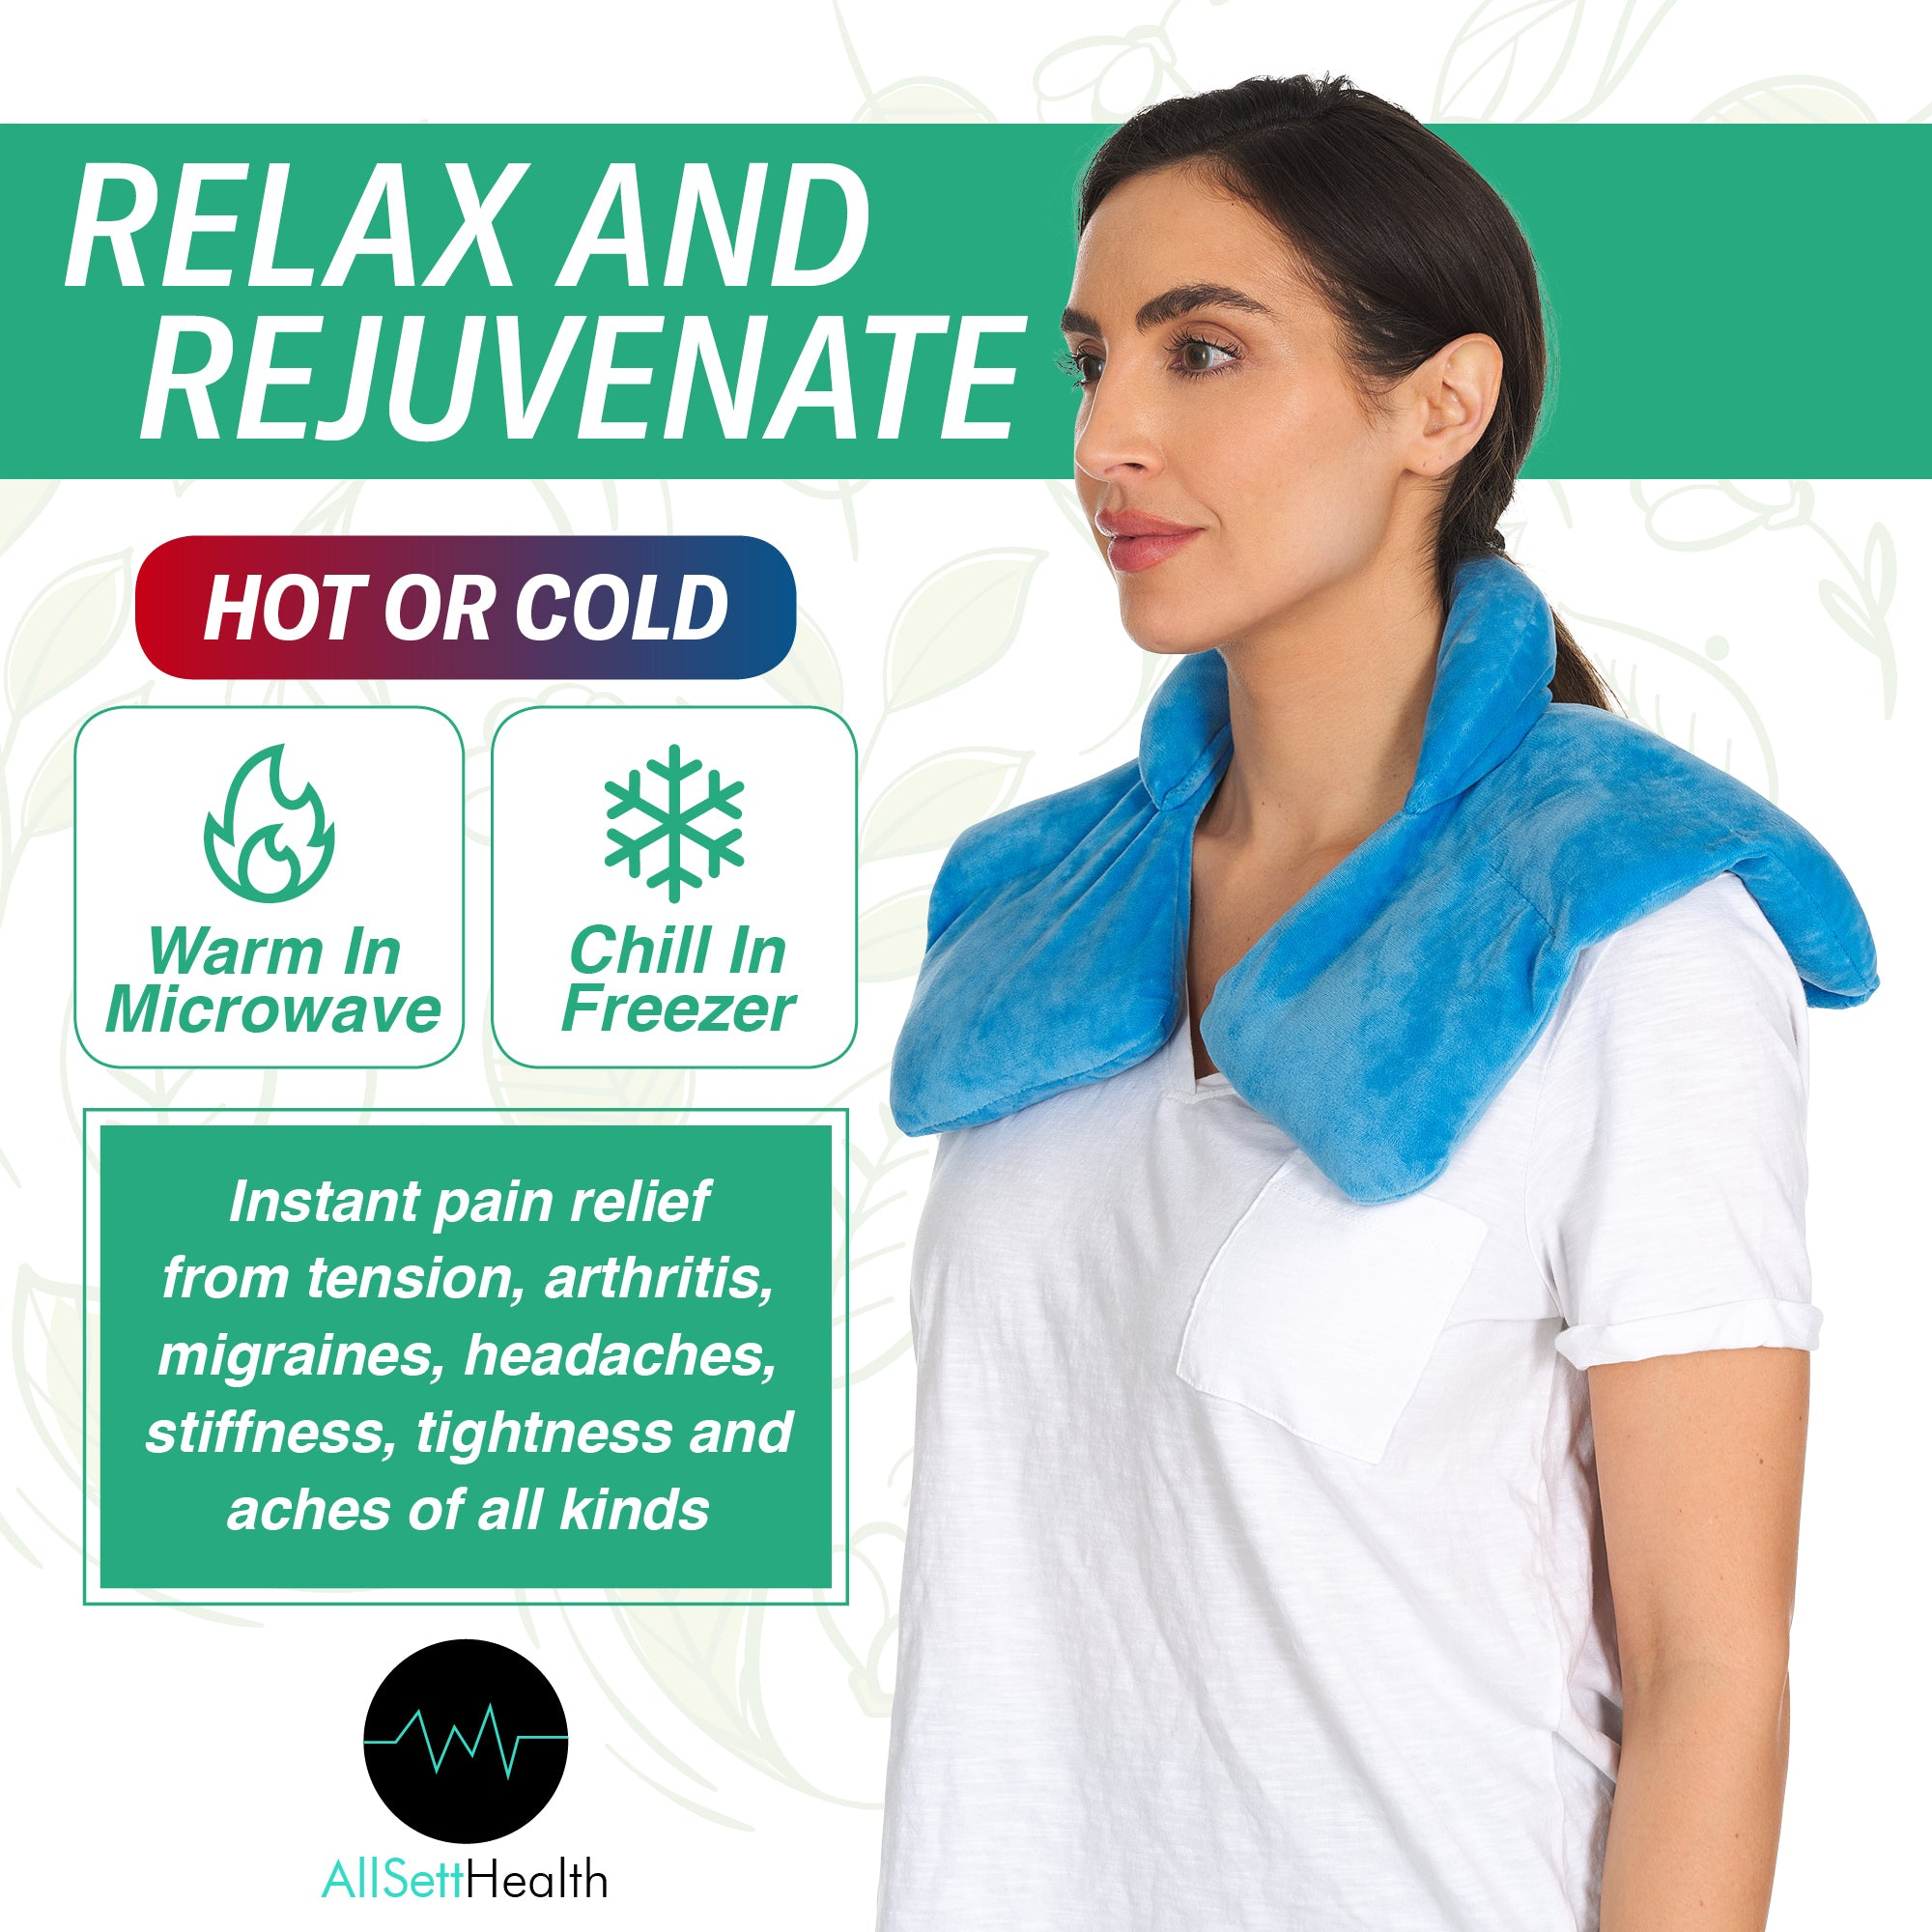 Microwavable Heating Pad for Neck & Shoulders - 3 Lbs Weighted Hot & Cold Wrap, Deep Pressure Relief, Comfort Design